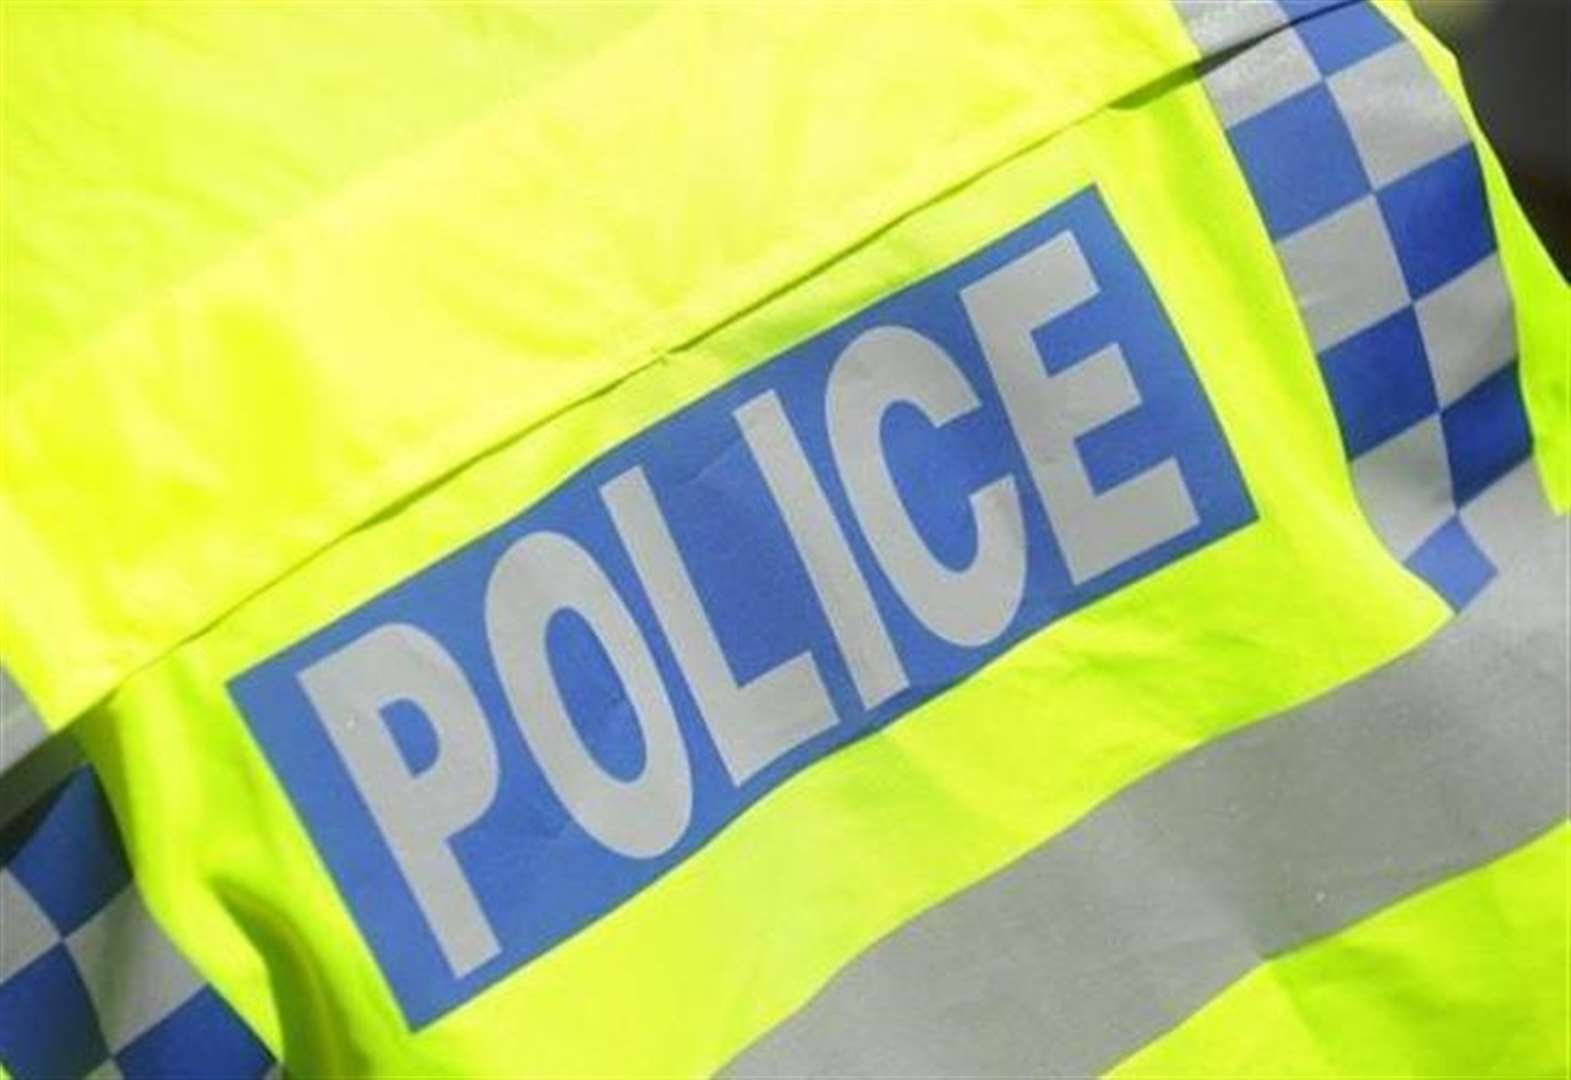 Lorry driver forced from cab in robbery near Grantham